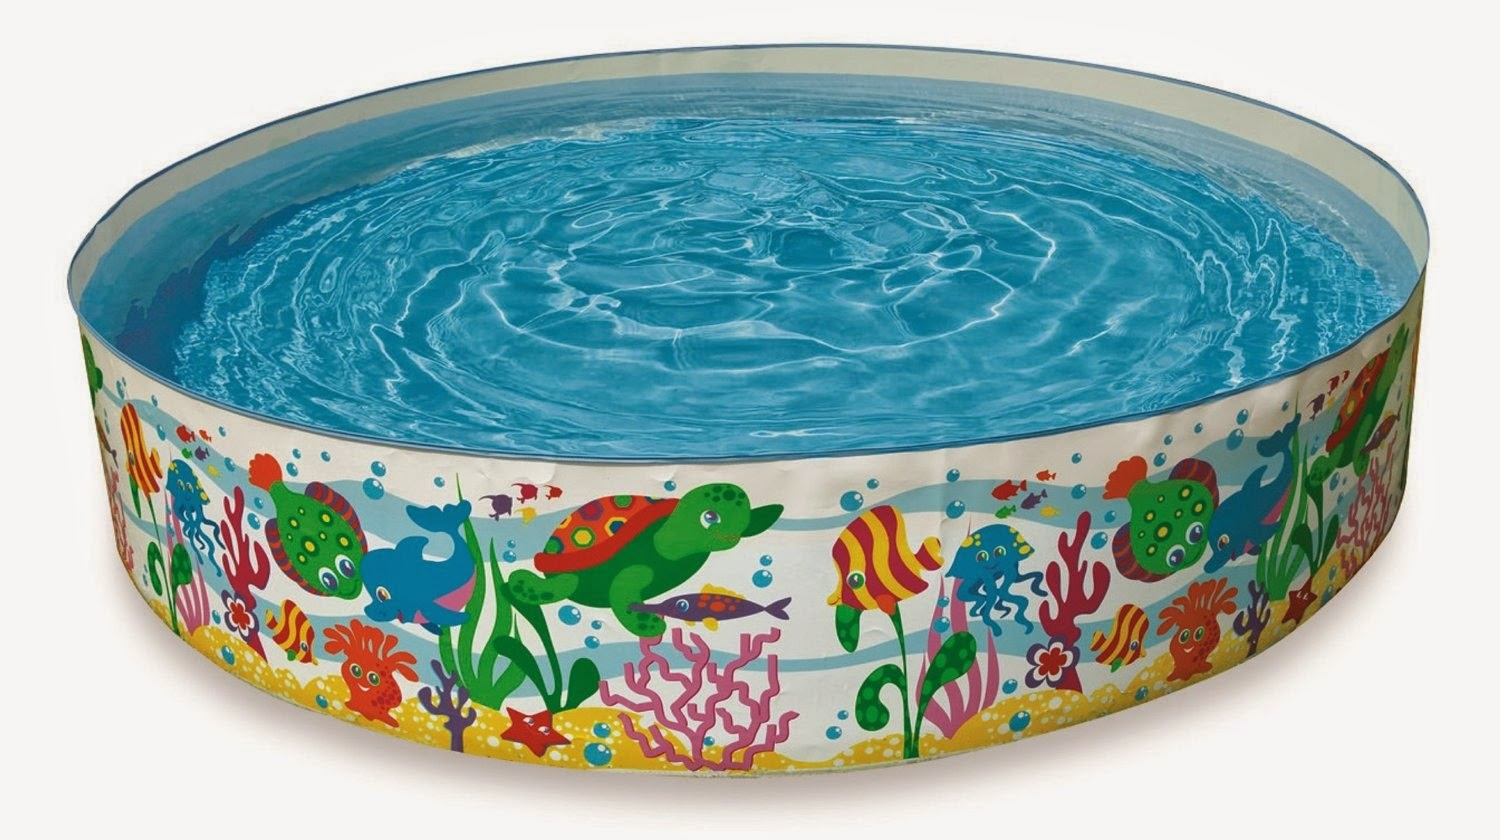 Plastic Pools For Kids kids pools: hard plastic pools for kids